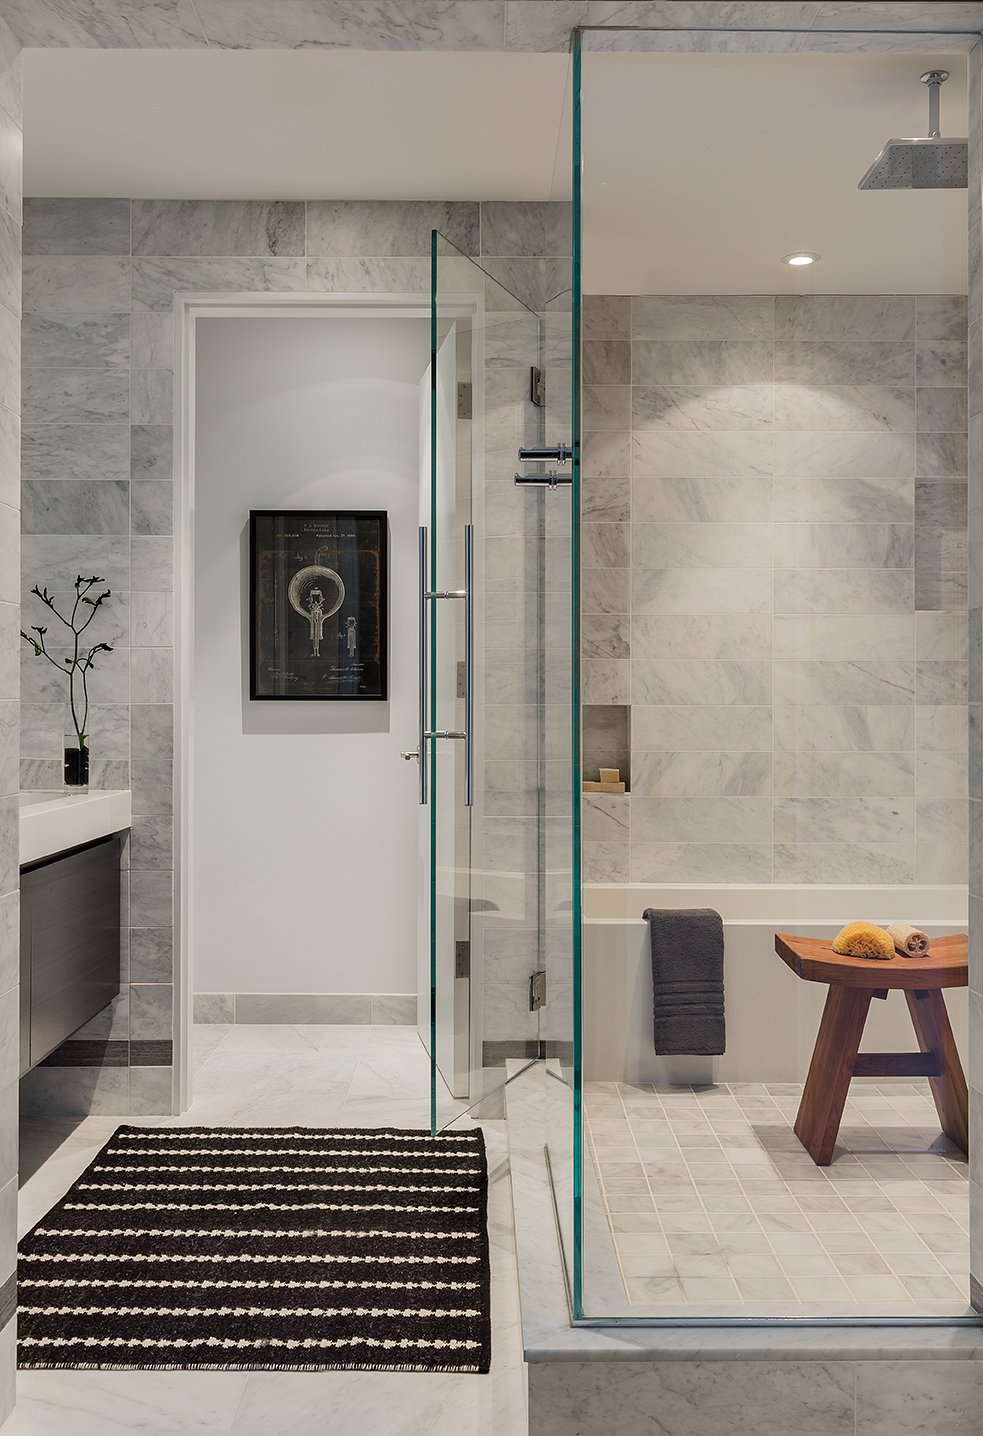 The master bathroom's marble tile wall is by White Venatino marble, with gray accent tile from Florim USA. A Wetstyle bathtub stands in the corner.  Back Bay by Kelly Dawson